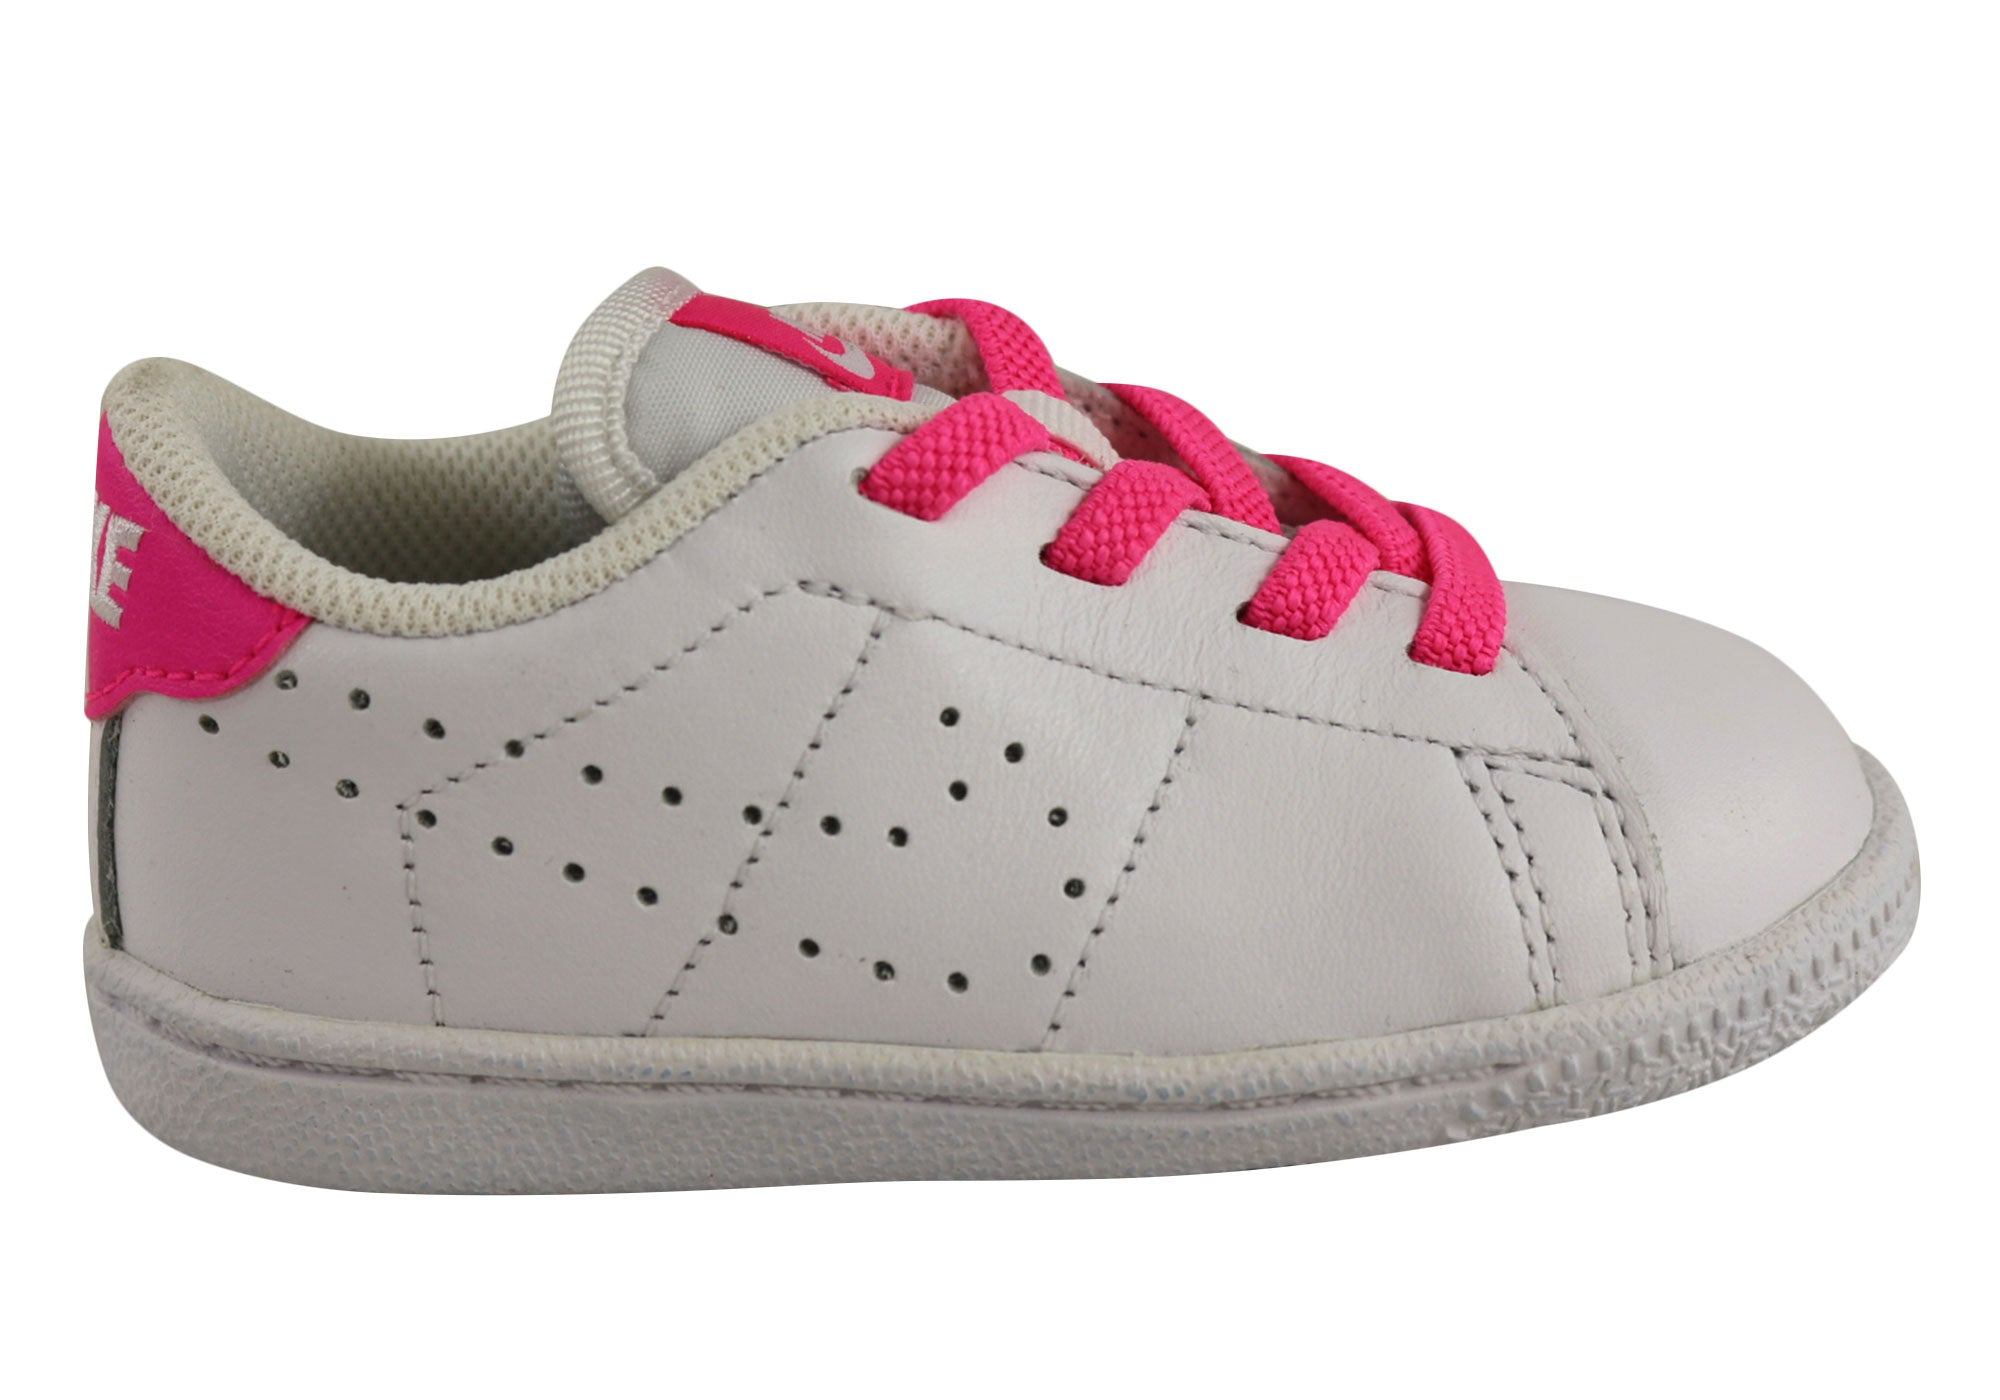 Nike Tennis Classic Premium Toddler Girls Leather Lace Up Shoes ... bb72ad9e5